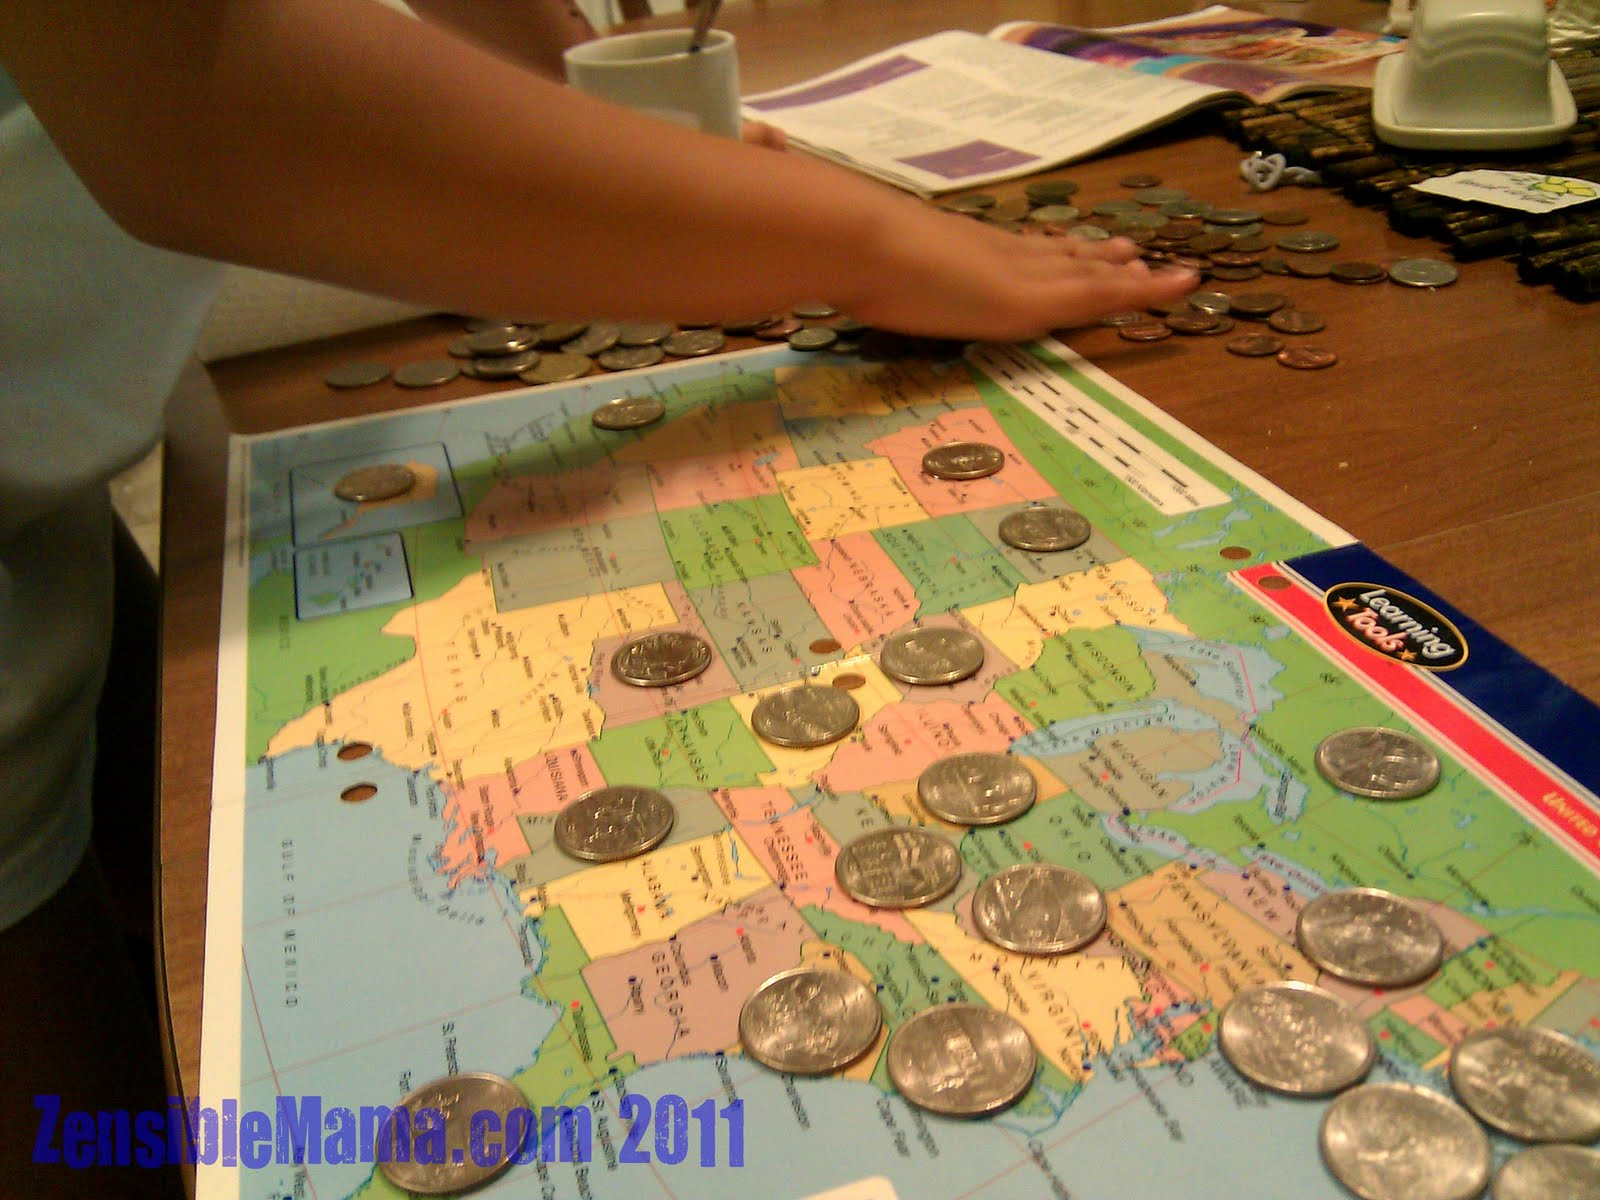 Us Map With The 50 States Identified By Name 50 Specially Marked Quarters With The 50 States Emblem A Clear Tape Or Glue If You Want It Permanent